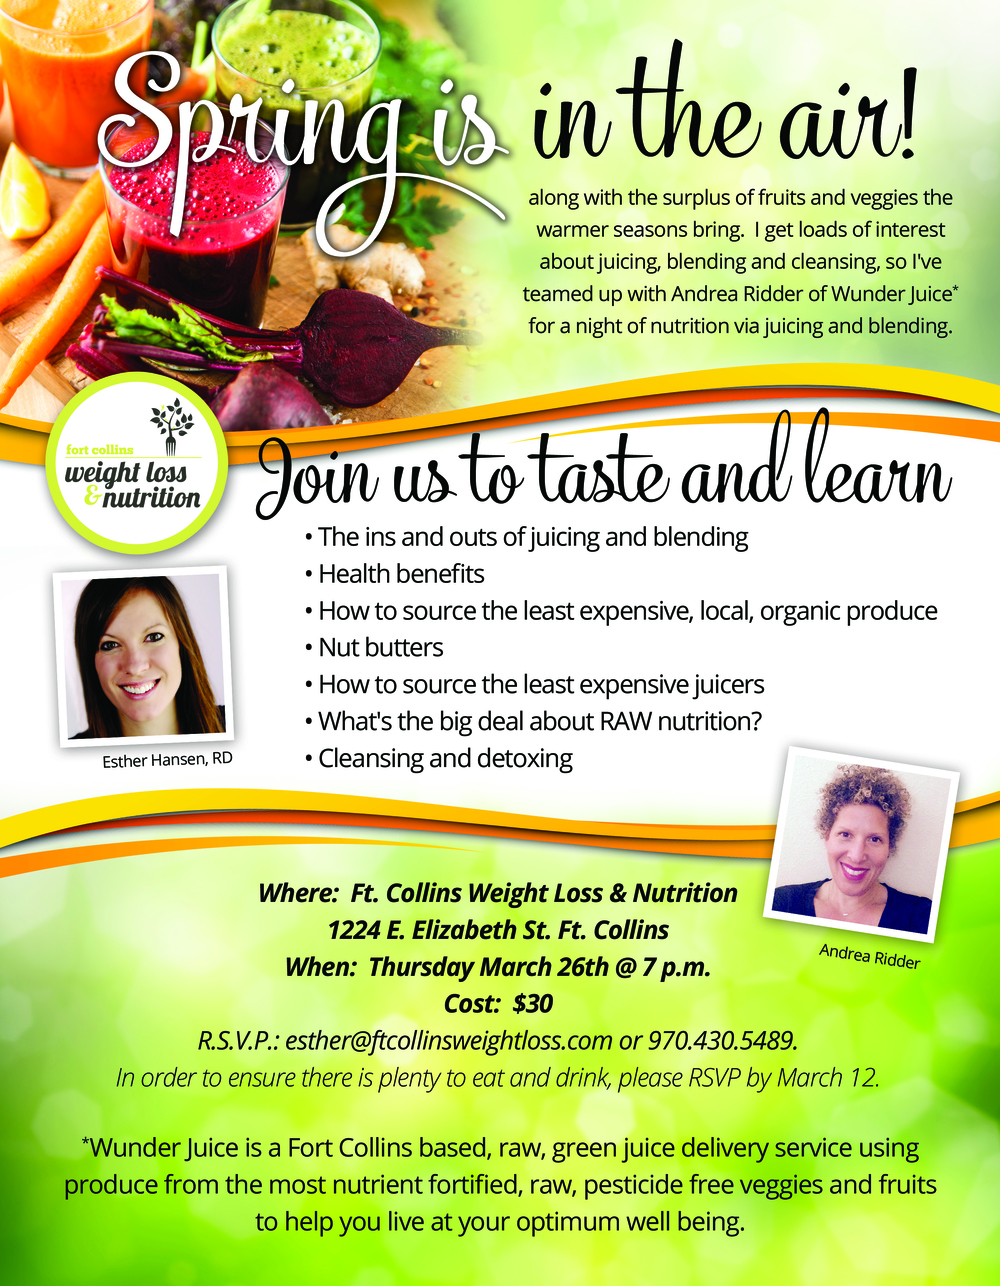 Ft Collins Weight Loss & Nutrition Class